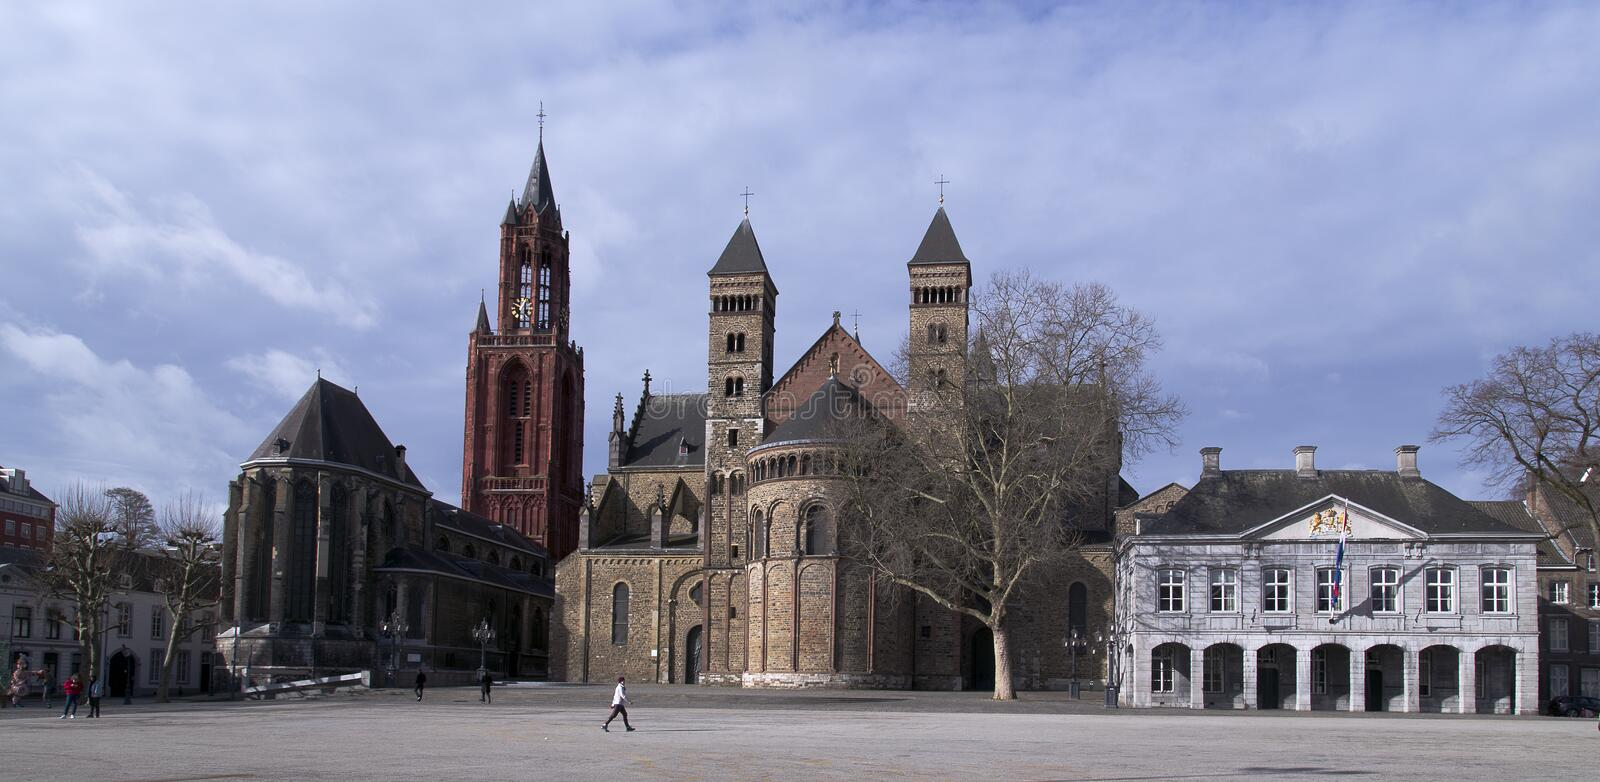 The Vrijthof, Maastricht. The large central historical square with centuries old historical structure. stock photos